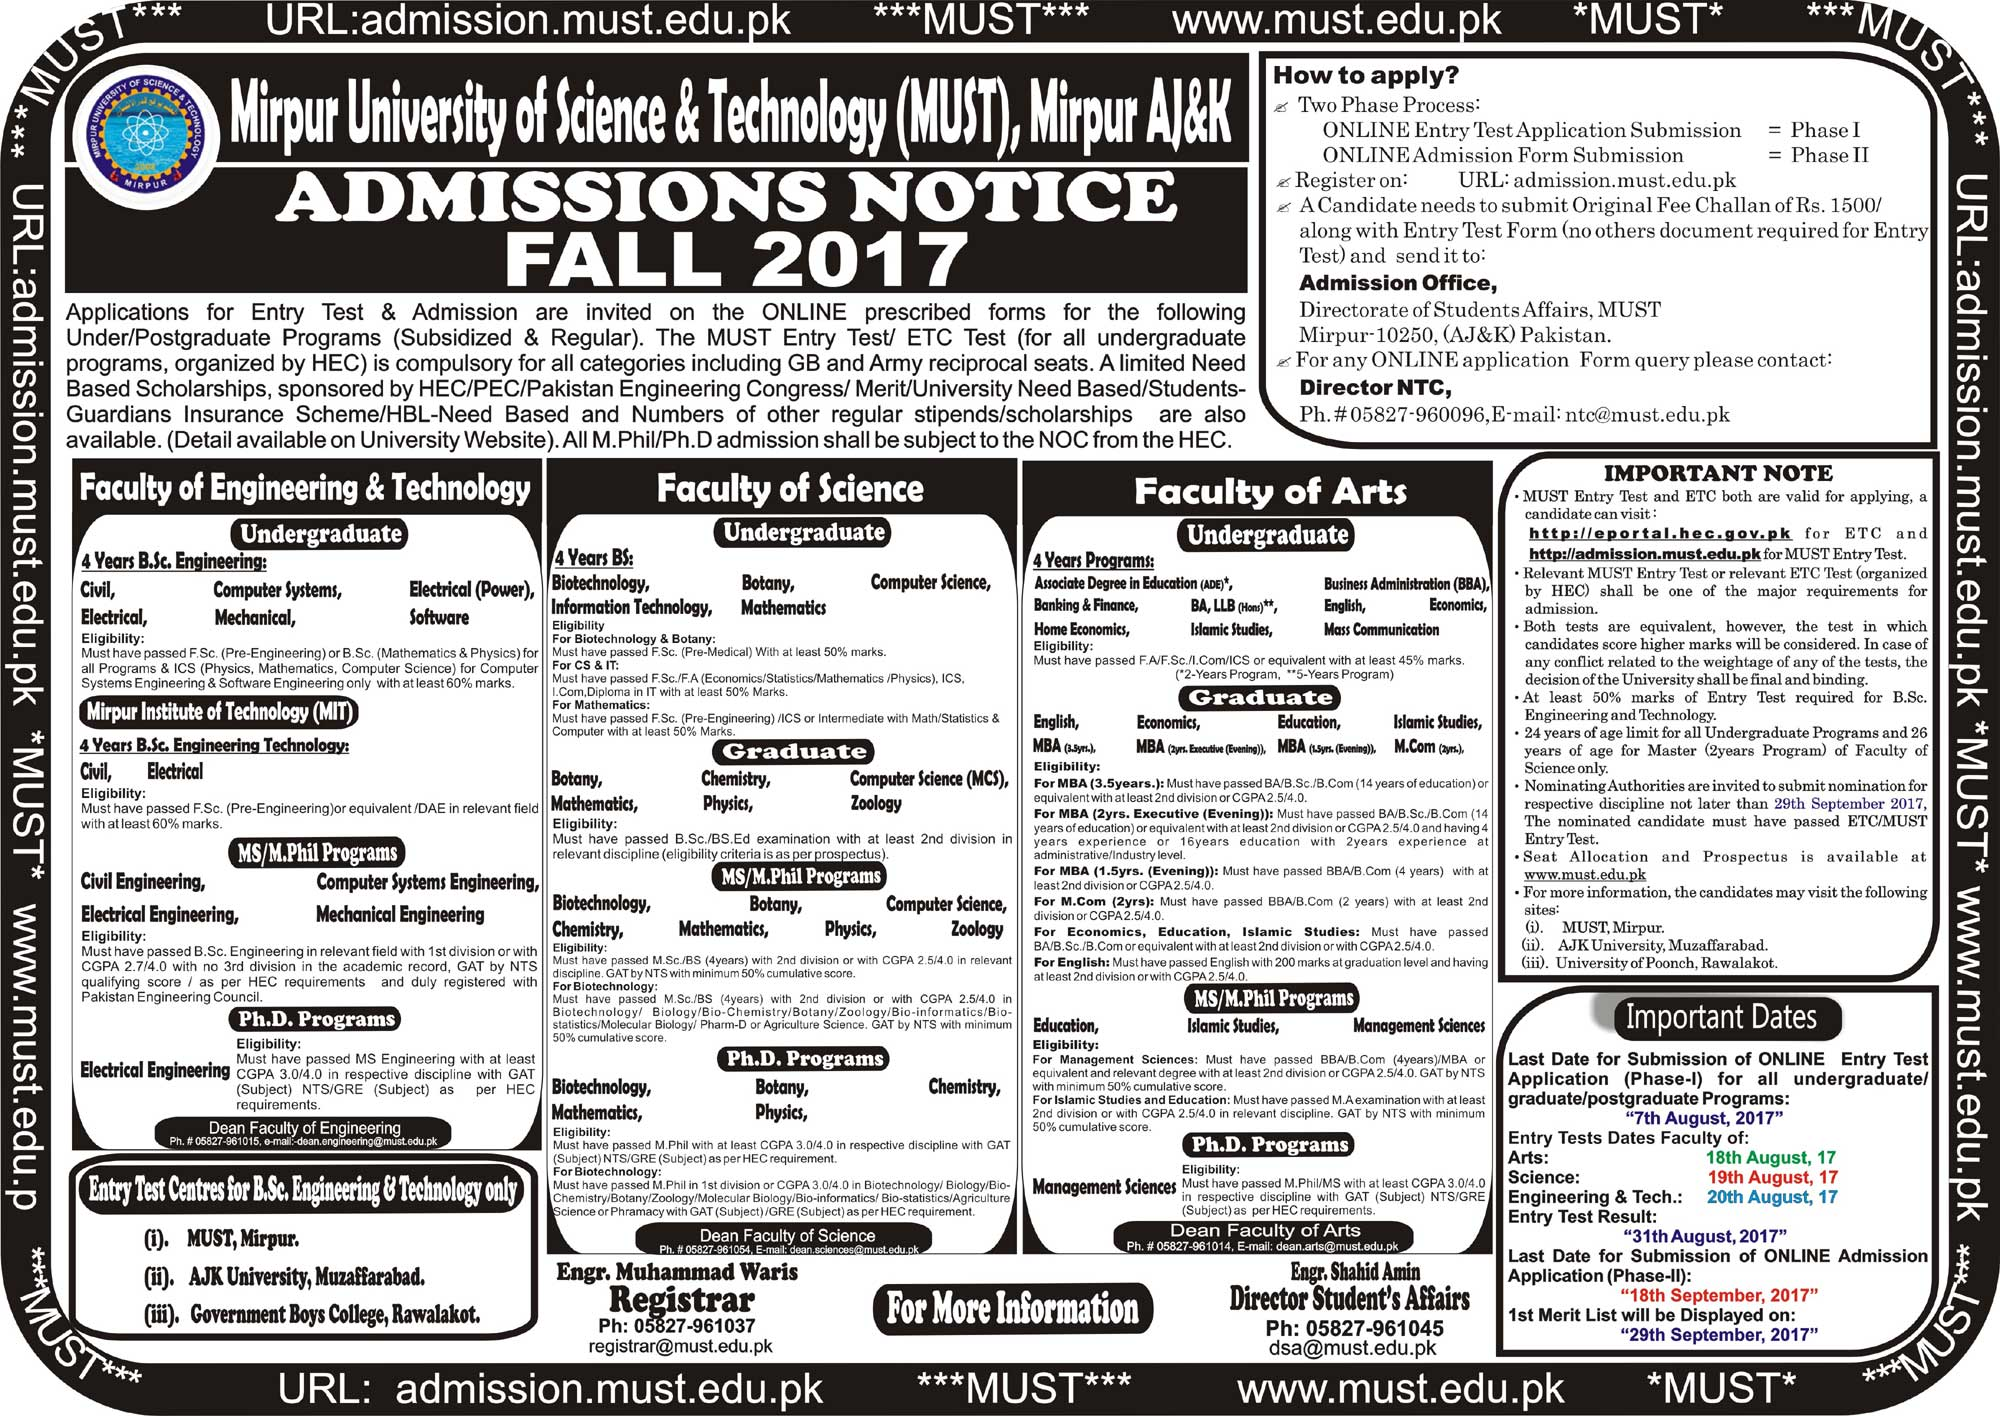 MUST admissions 2017